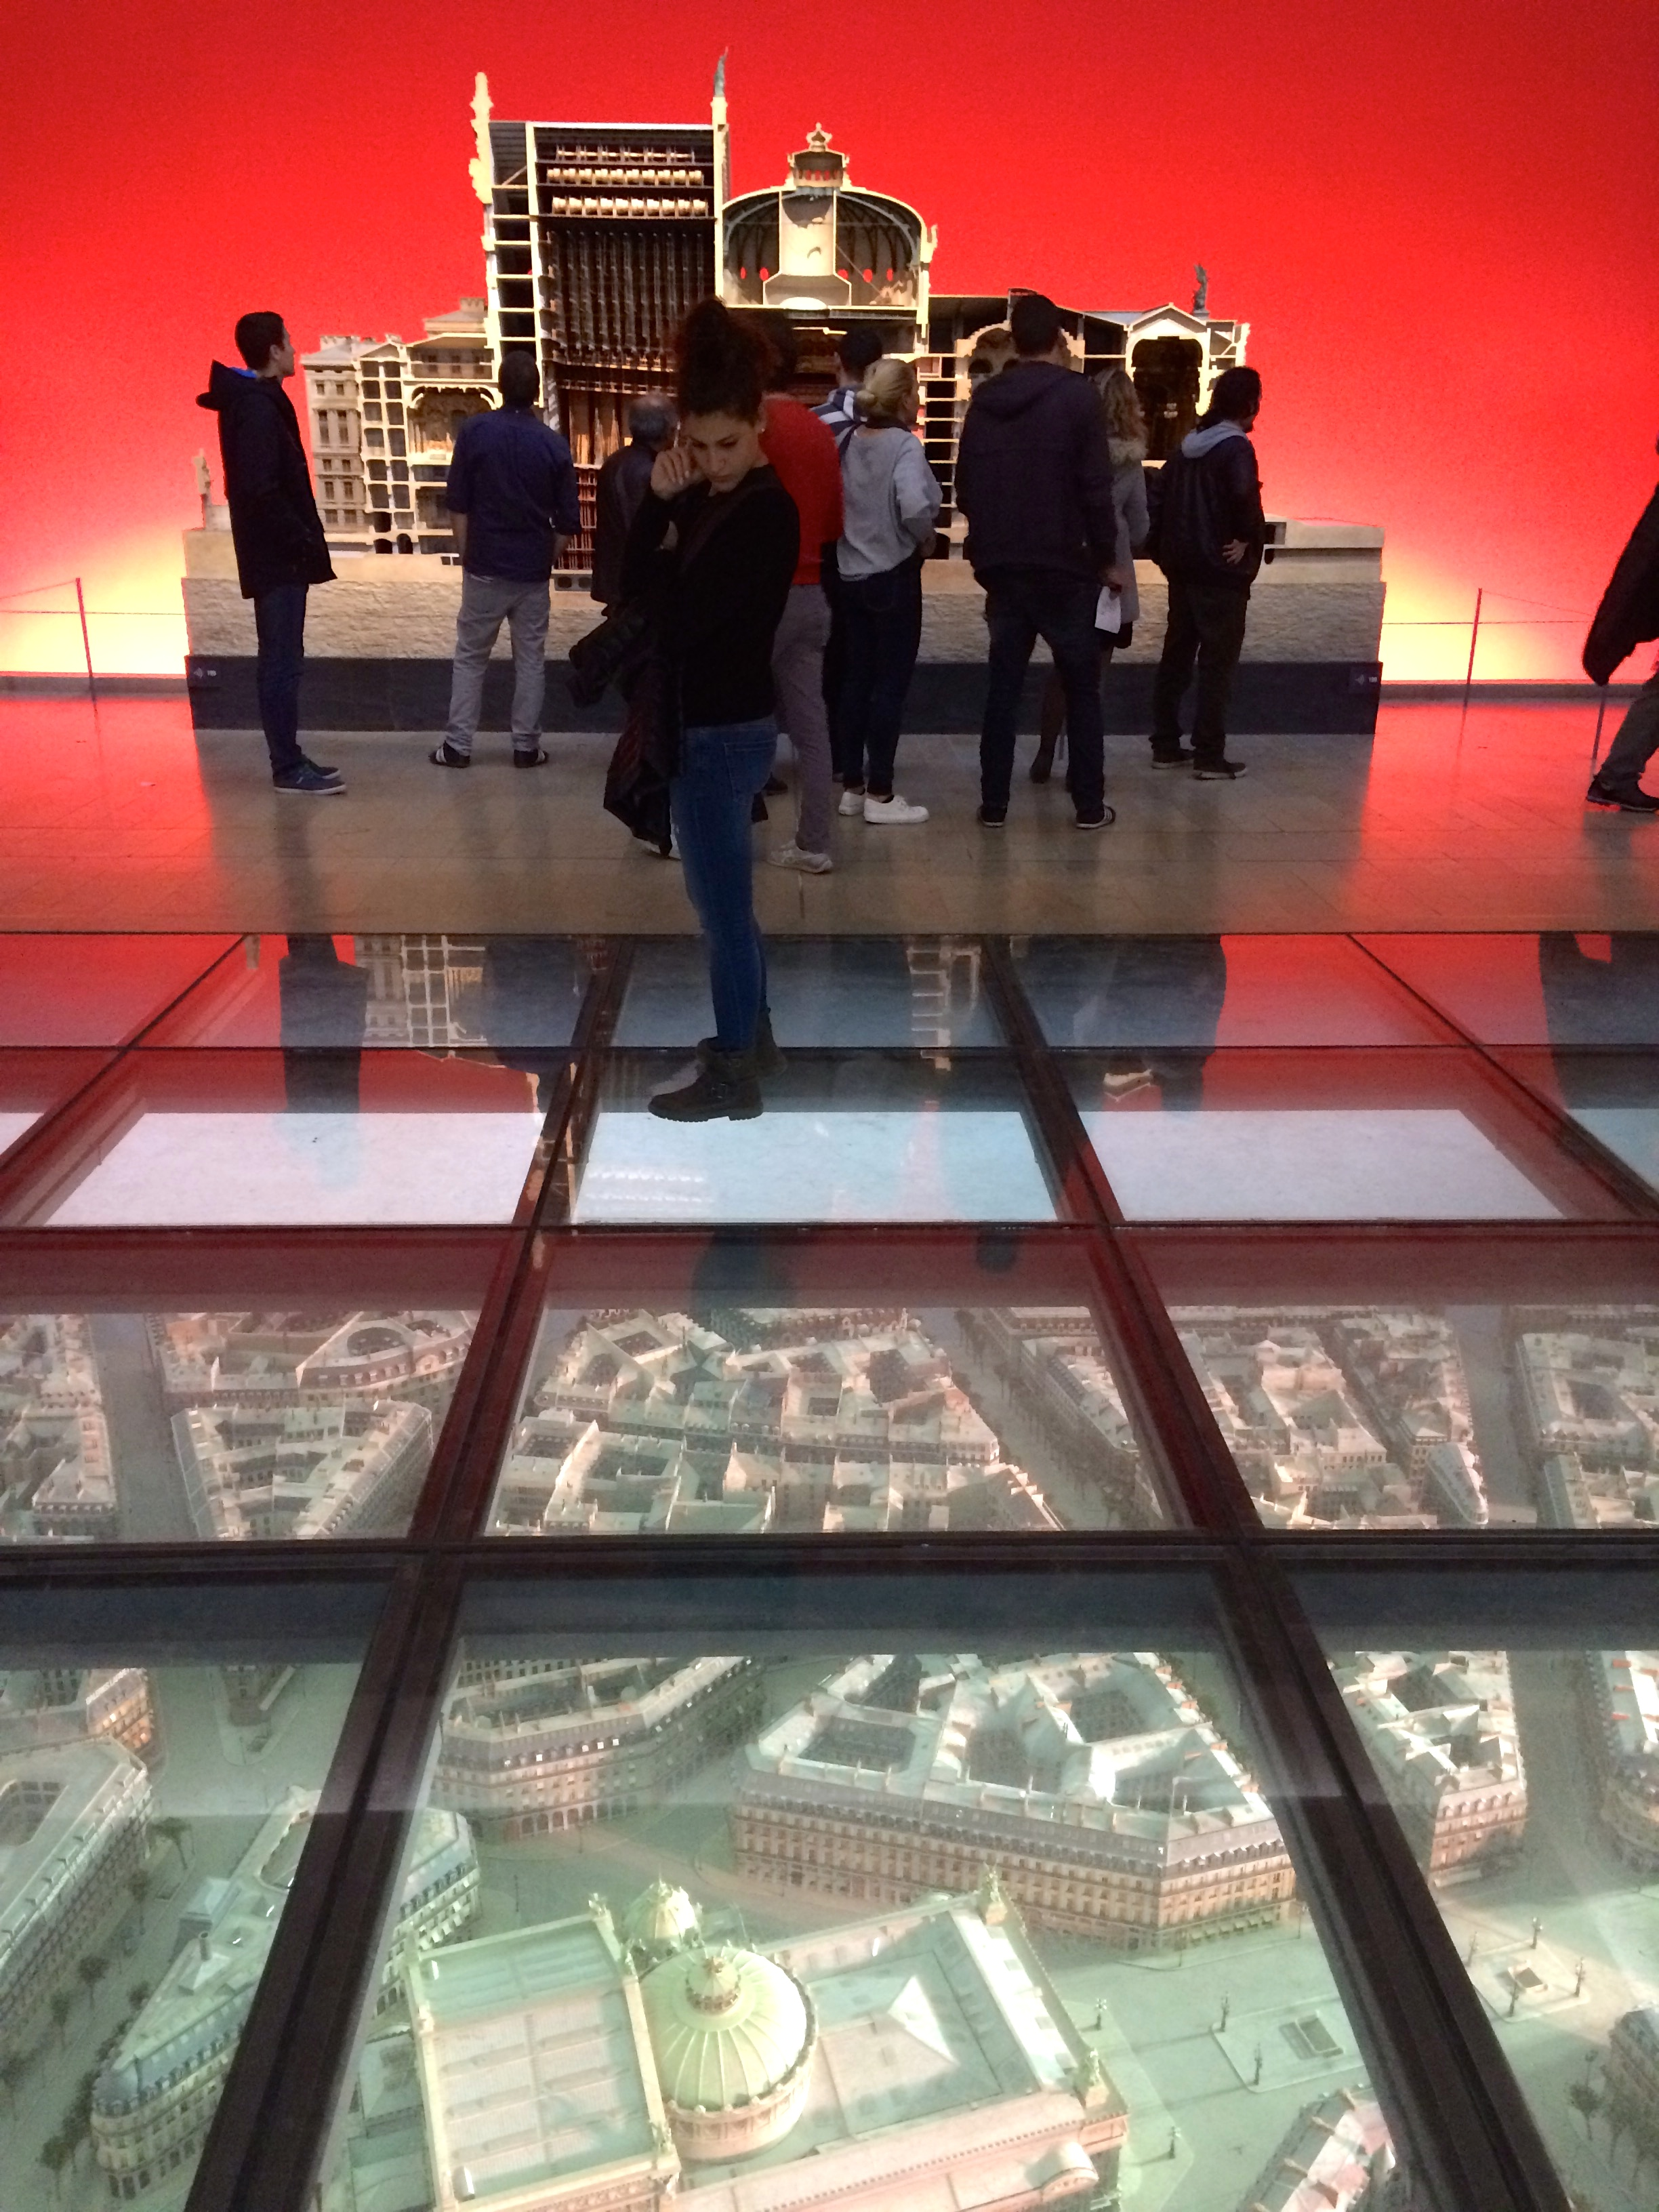 Visitors peer downward at a large model of the Opera neighbourhood beneath a glass floor for context.